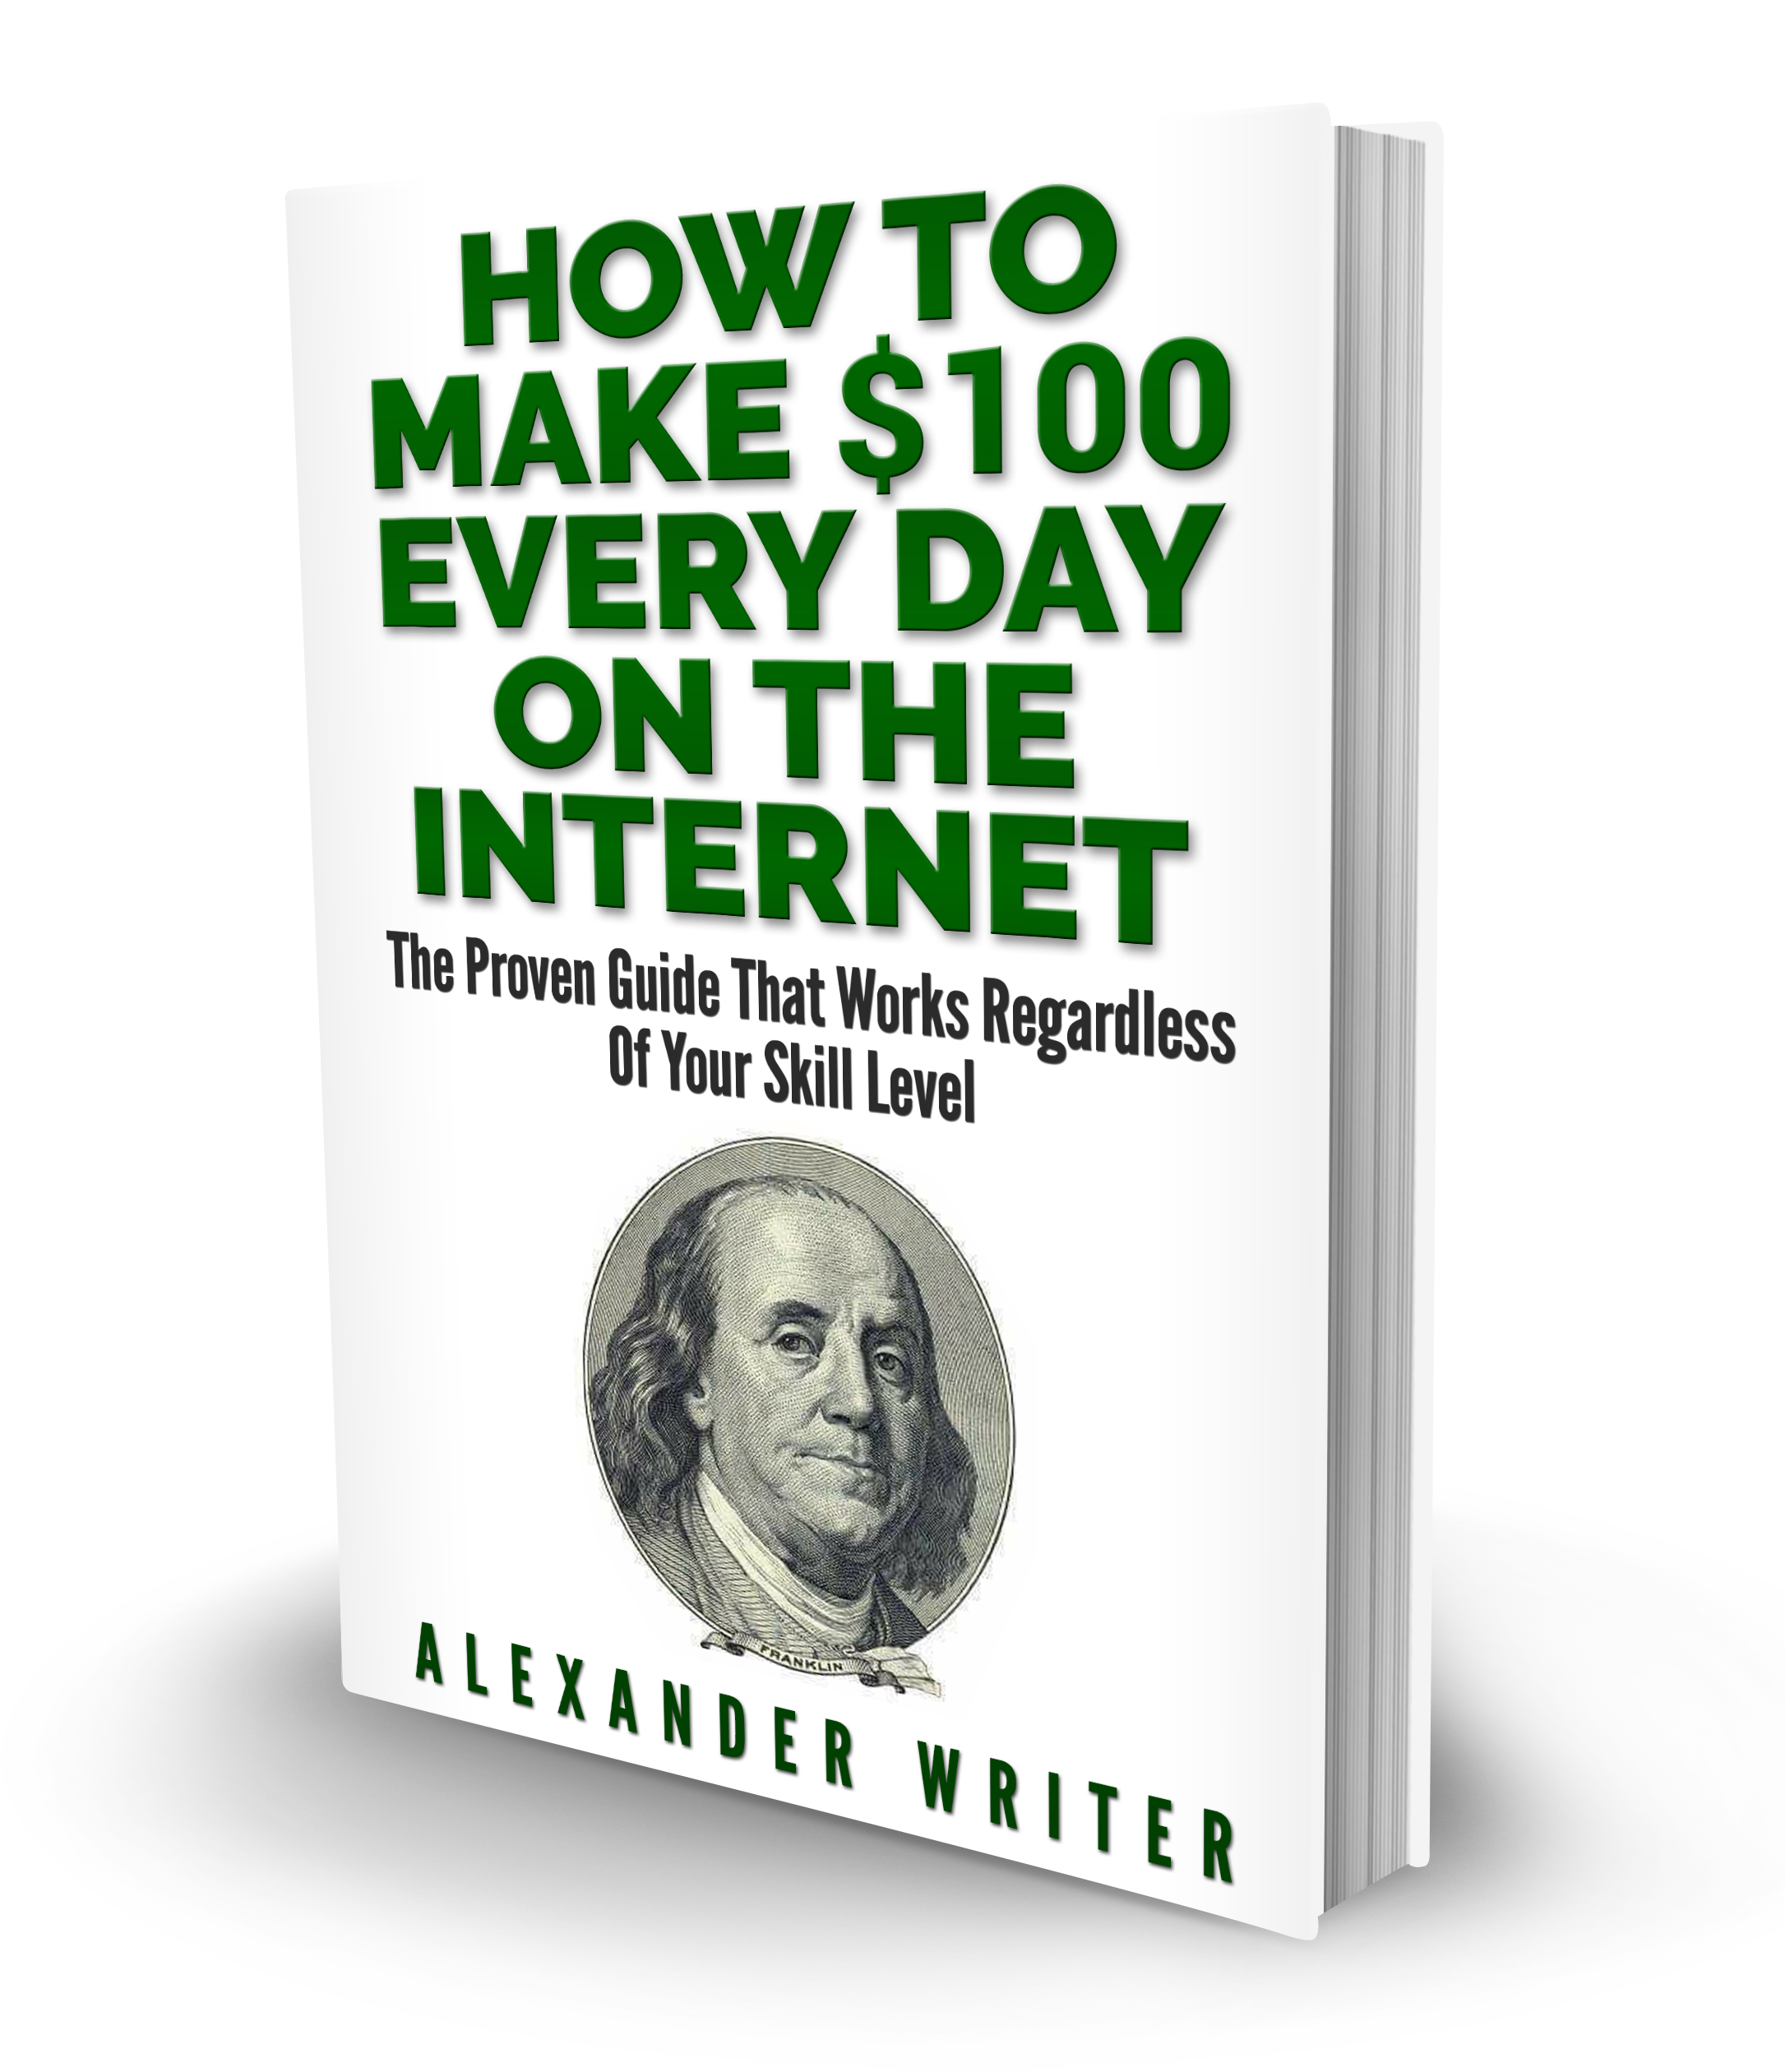 How to make $100 every day on the internet